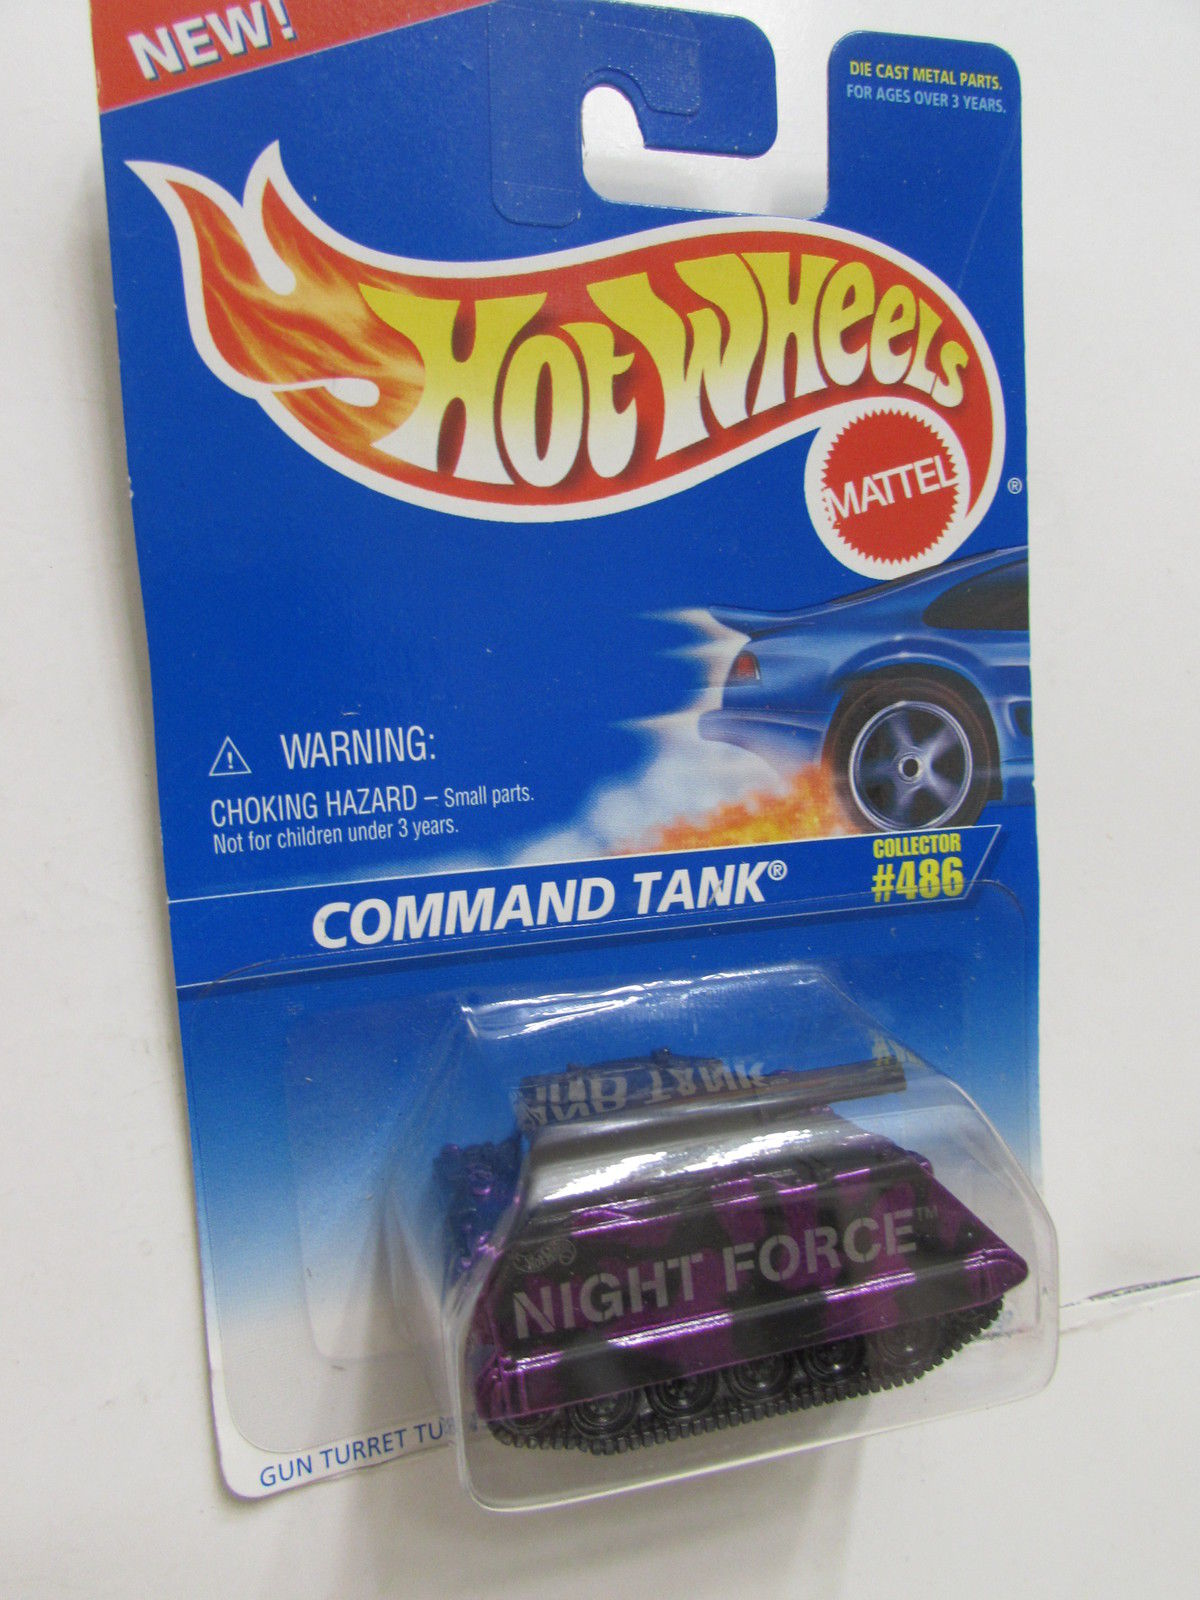 HOT WHEELS 1996 COMMAND TANK #486